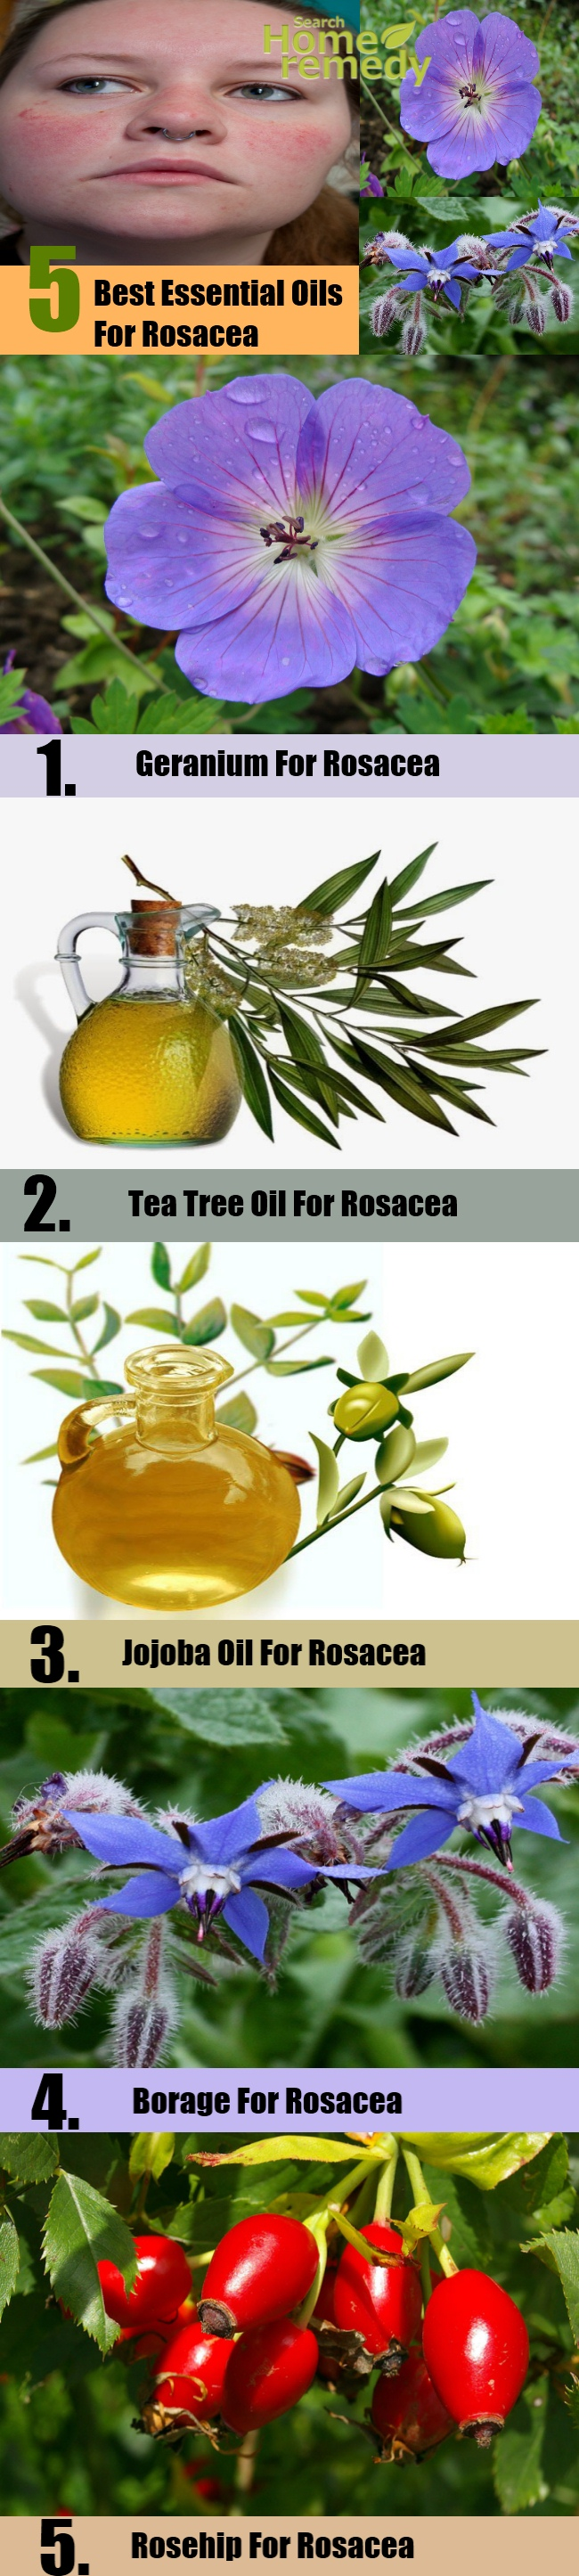 The 5 Best Essential Oils For Rosacea